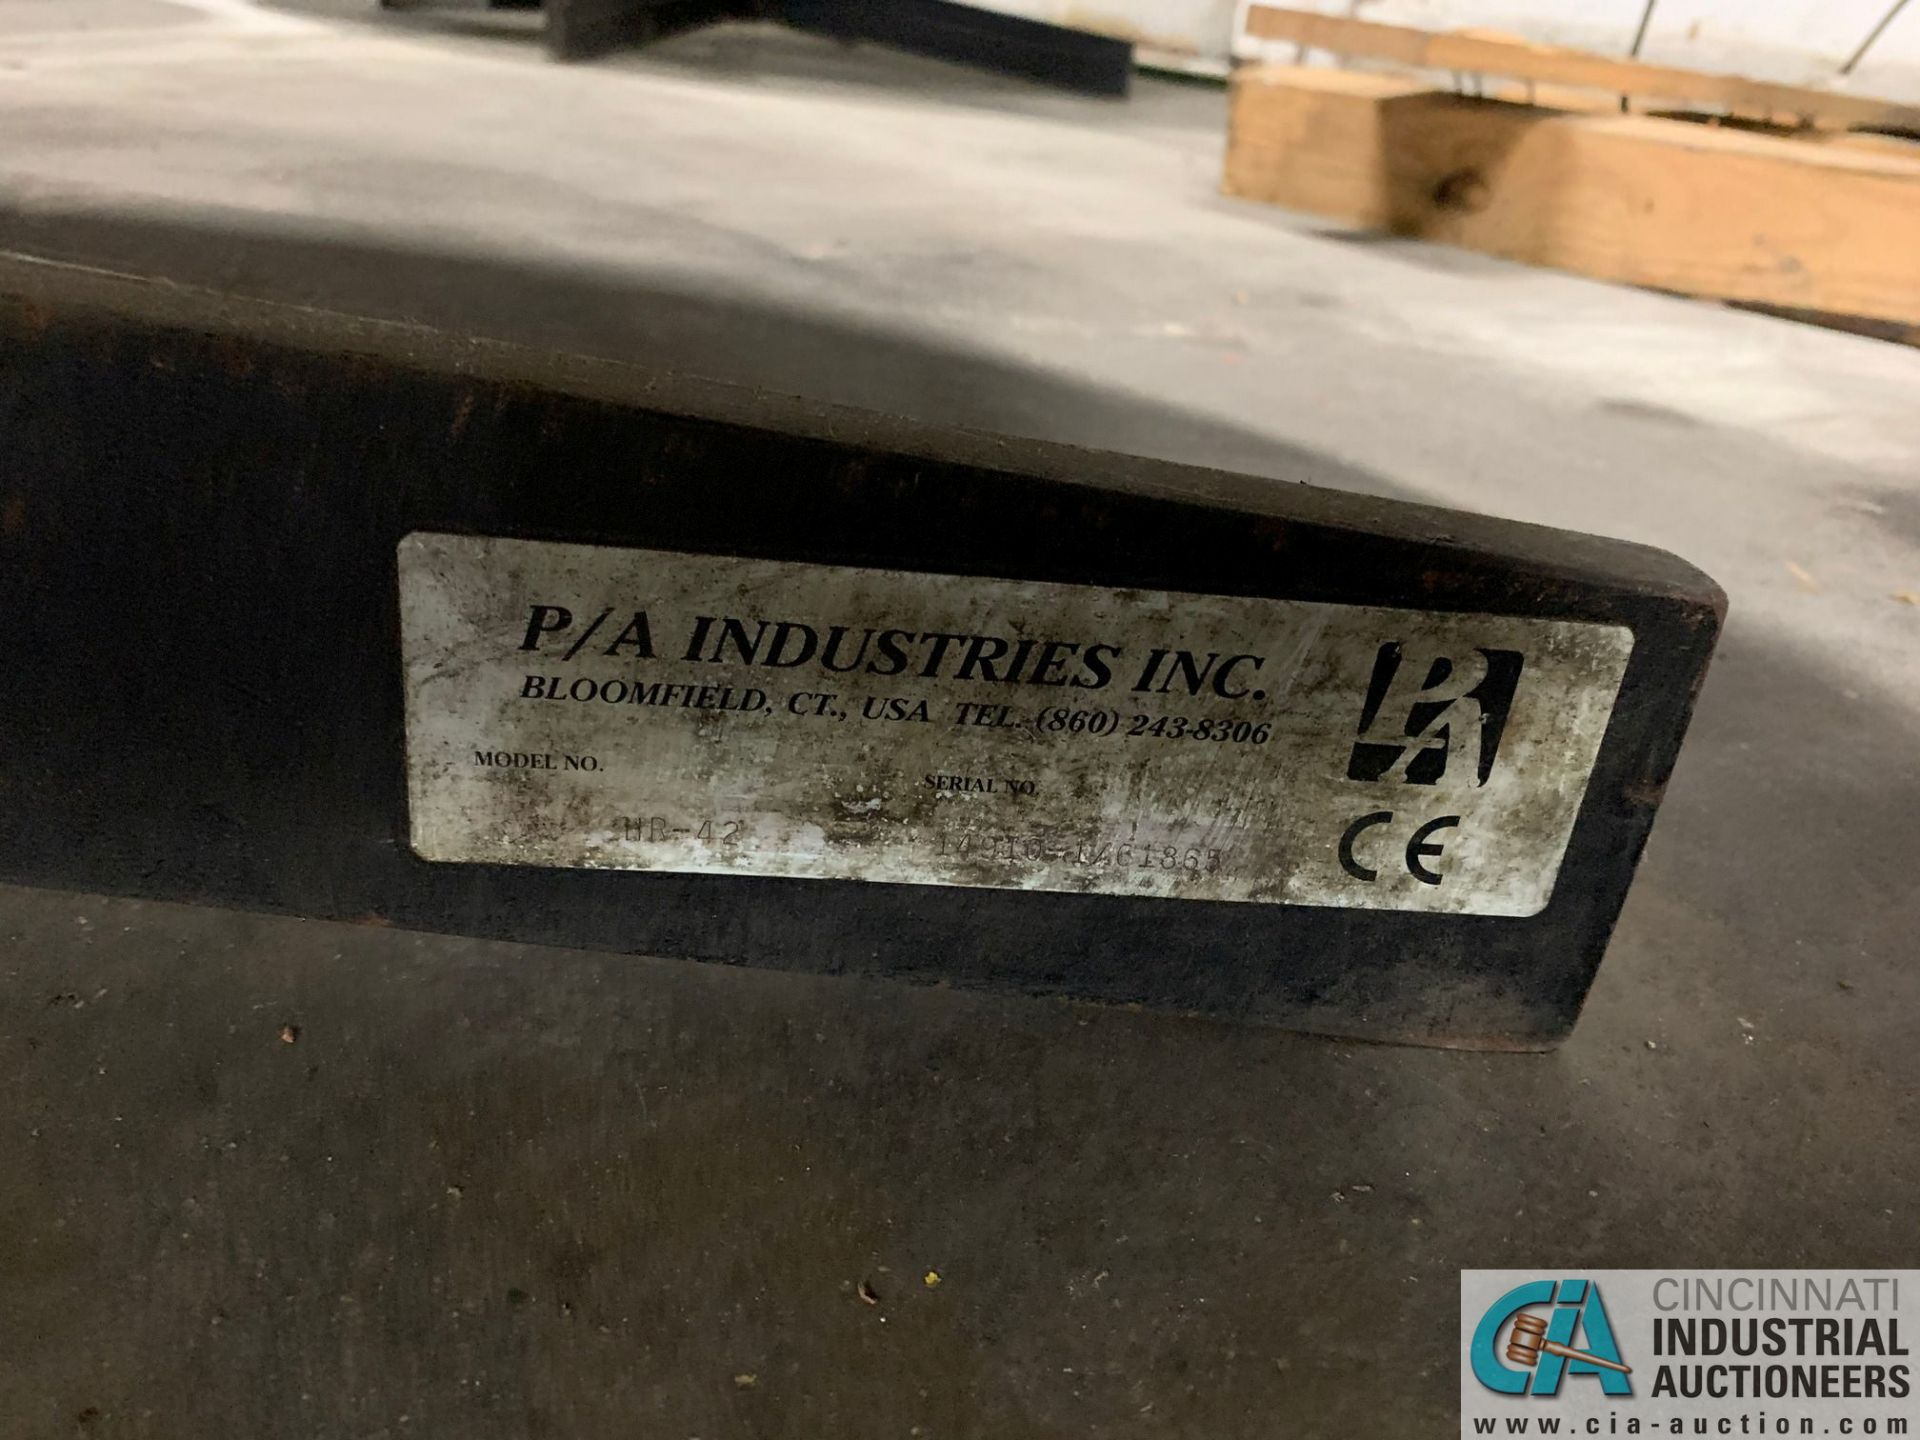 PA INDUSTRIES HORIZONTAL PAYOFF REELS - Image 2 of 2